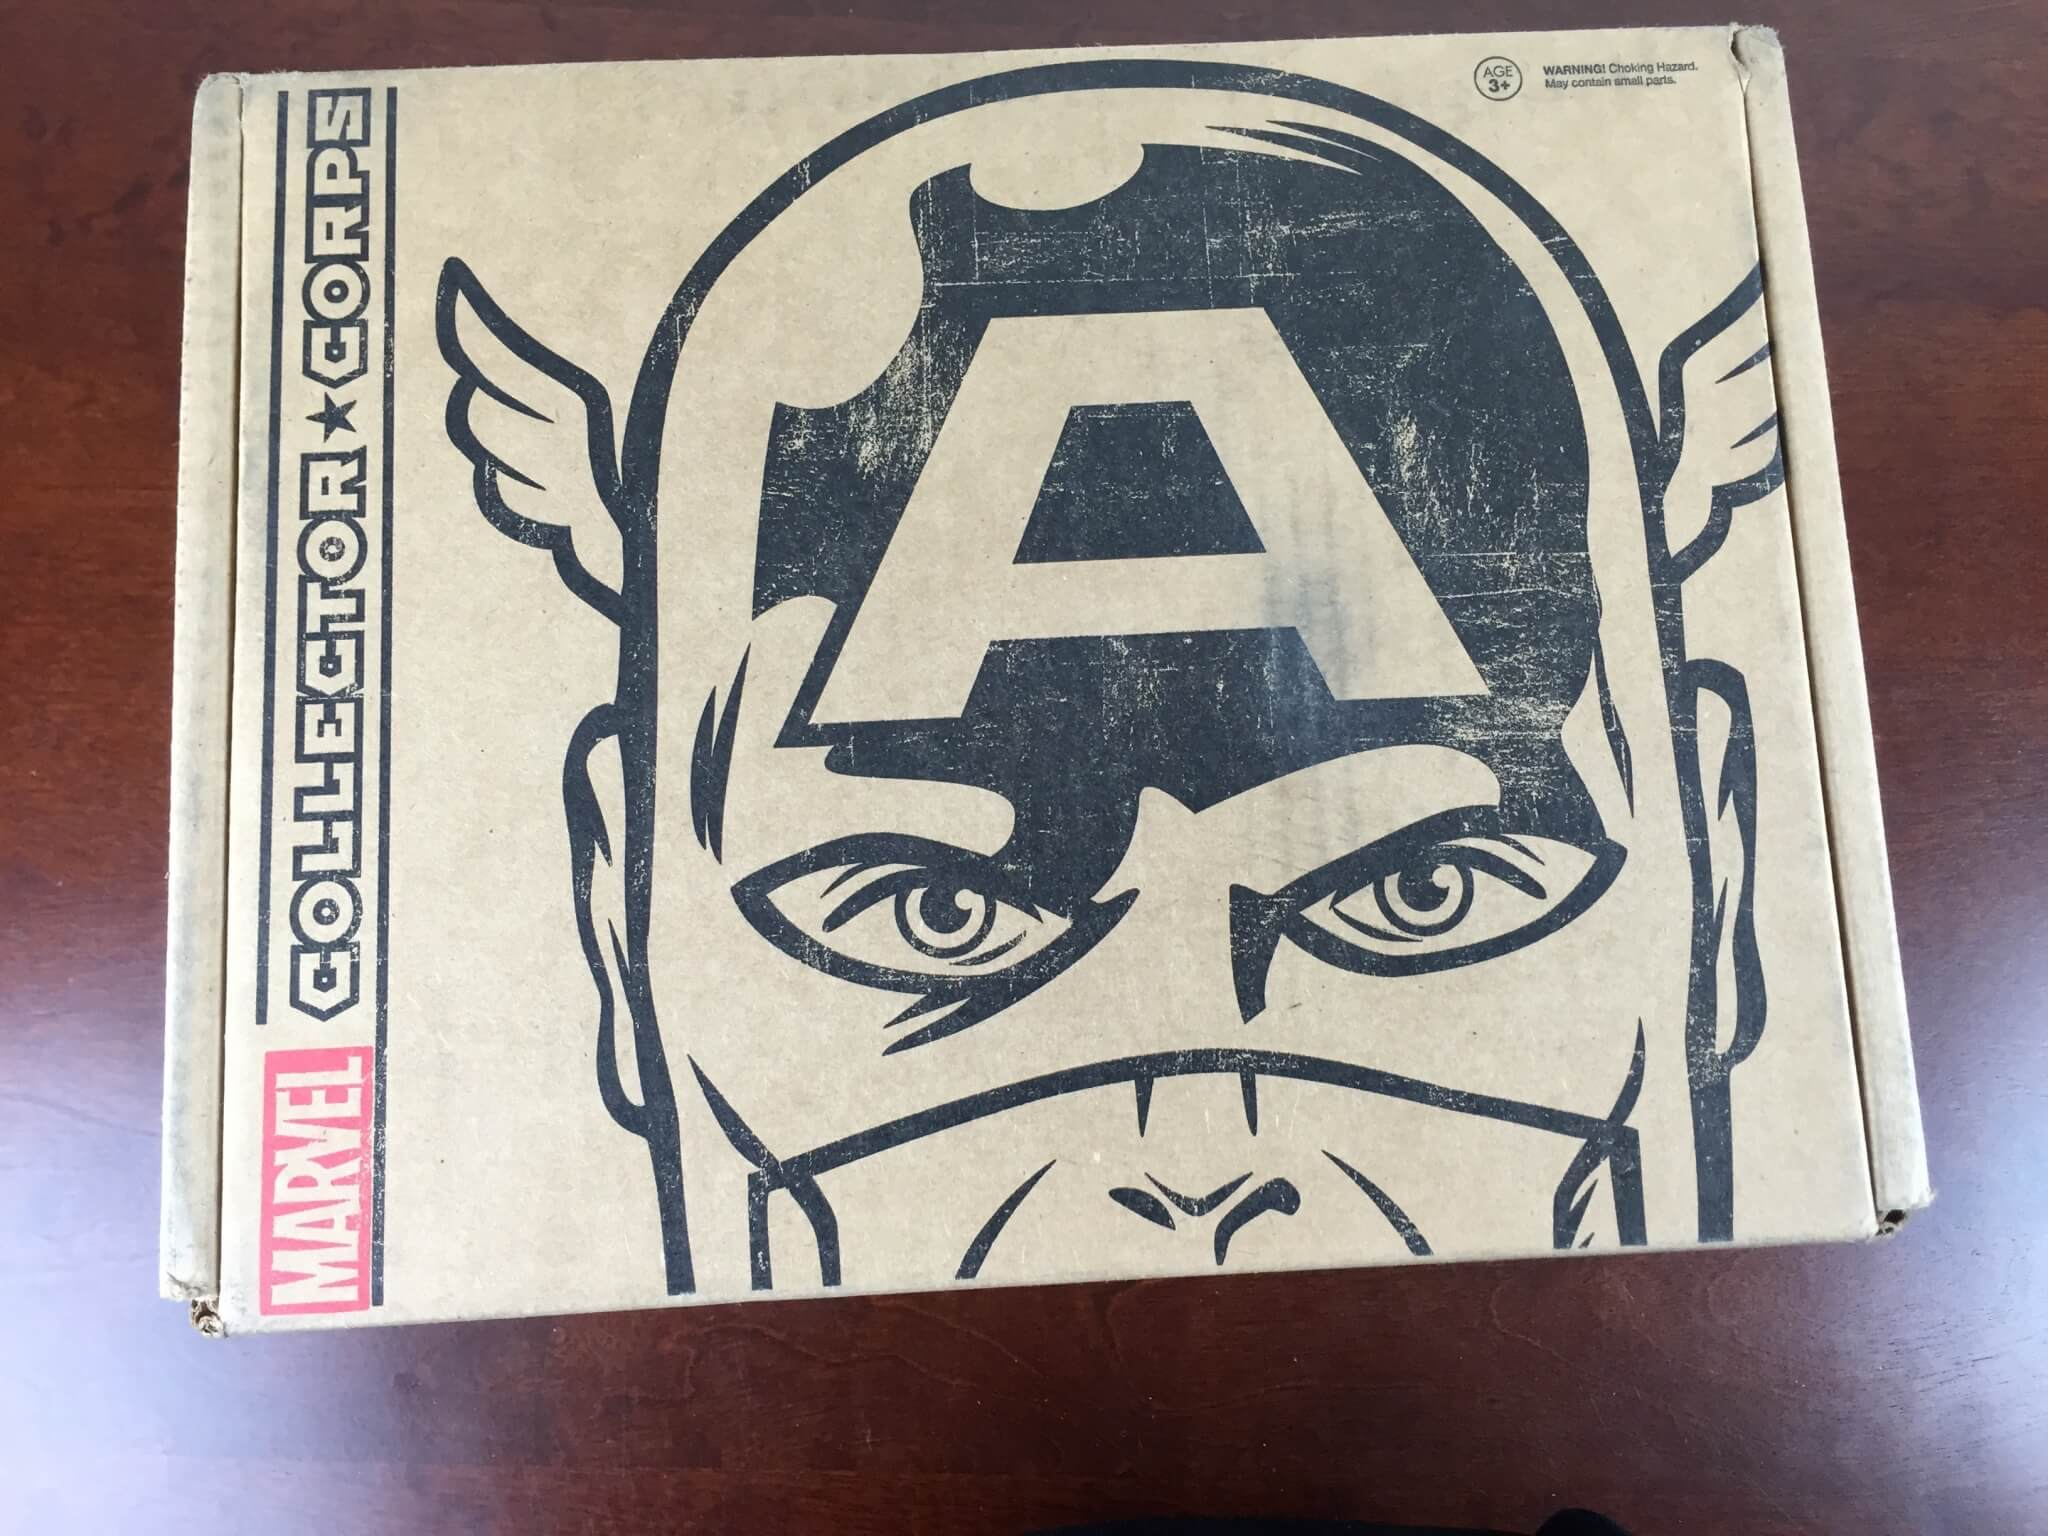 Marvel Collector Corps Subscription Box Review – April 2015